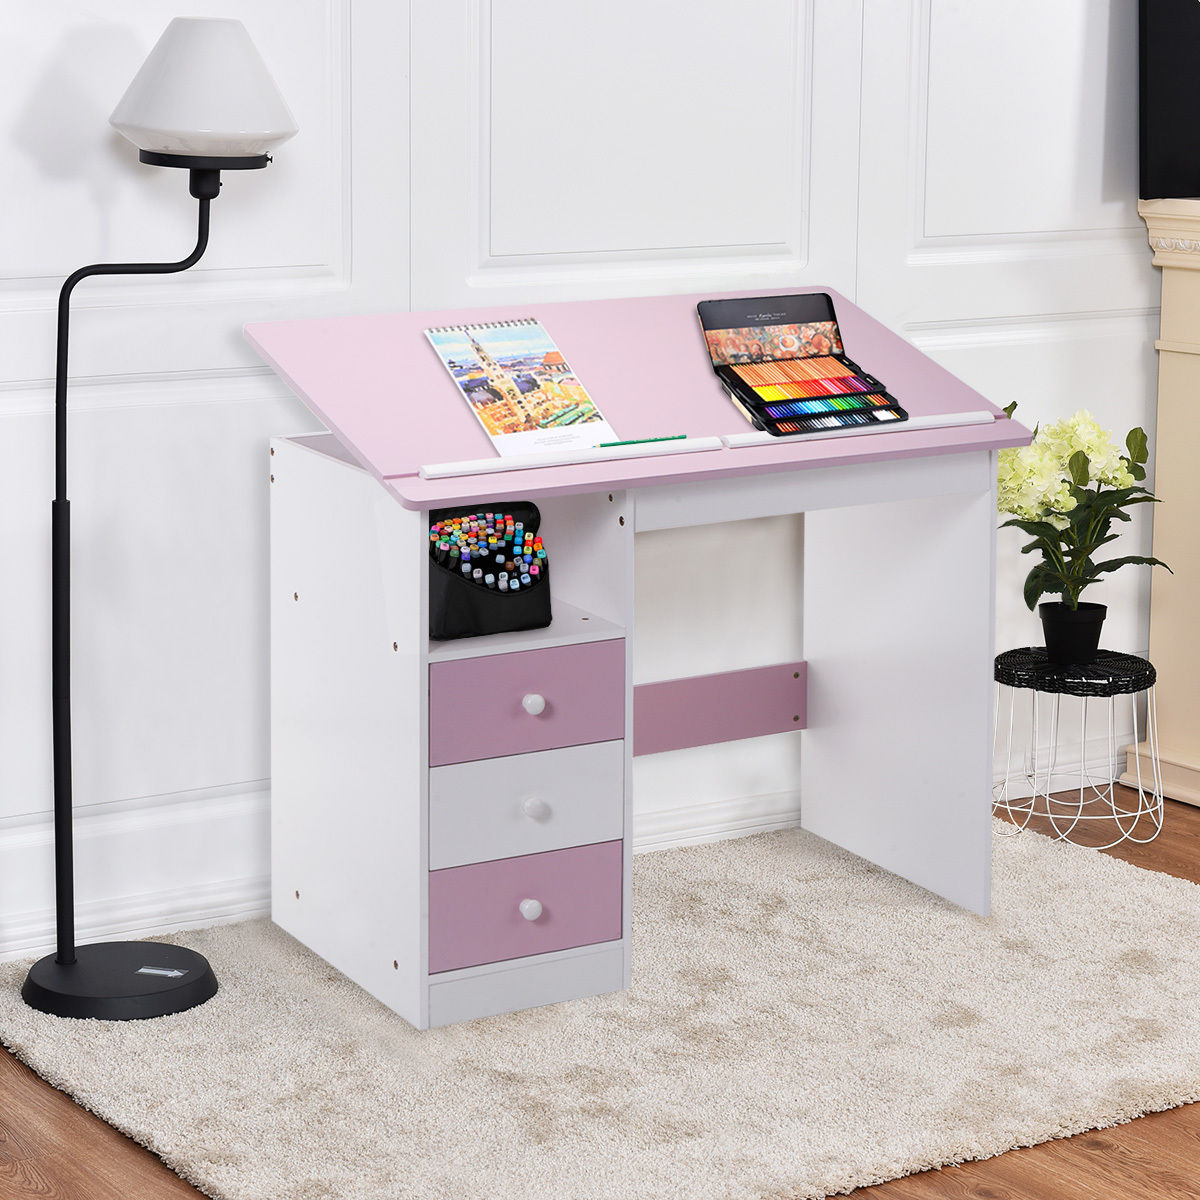 Giantex Adjustable Top Drawing Desk Modern Drafting Table Pink Workstation Furniture with Drawers HW52647 стоимость